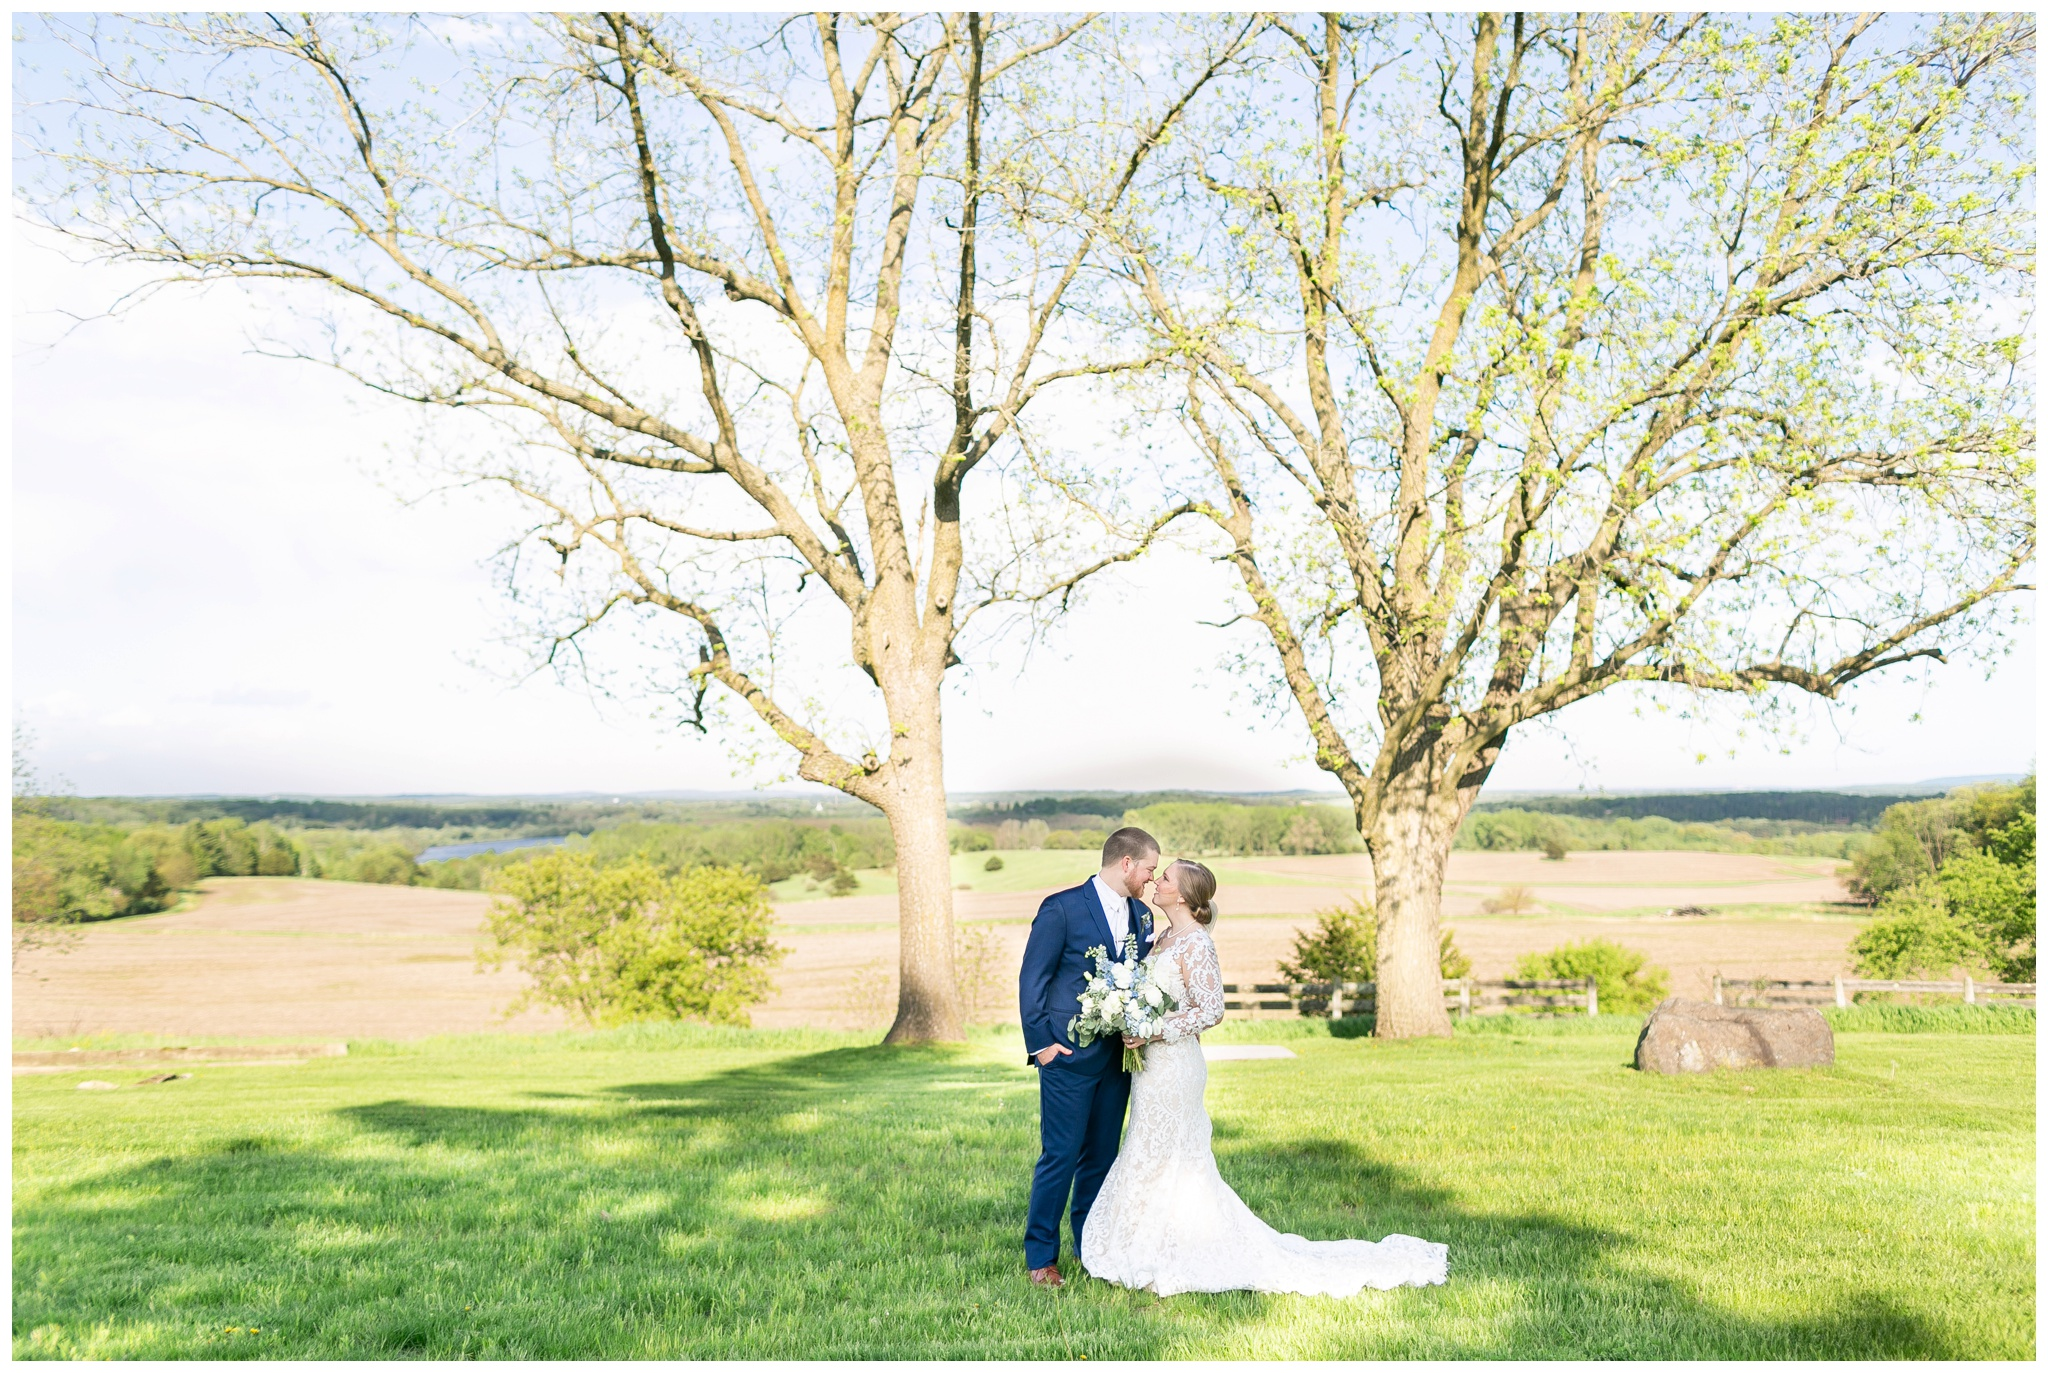 vennebu_hill_baraboo_wisconsin_wedding_madison_wisconsin_wedding_photographers_3054.jpg